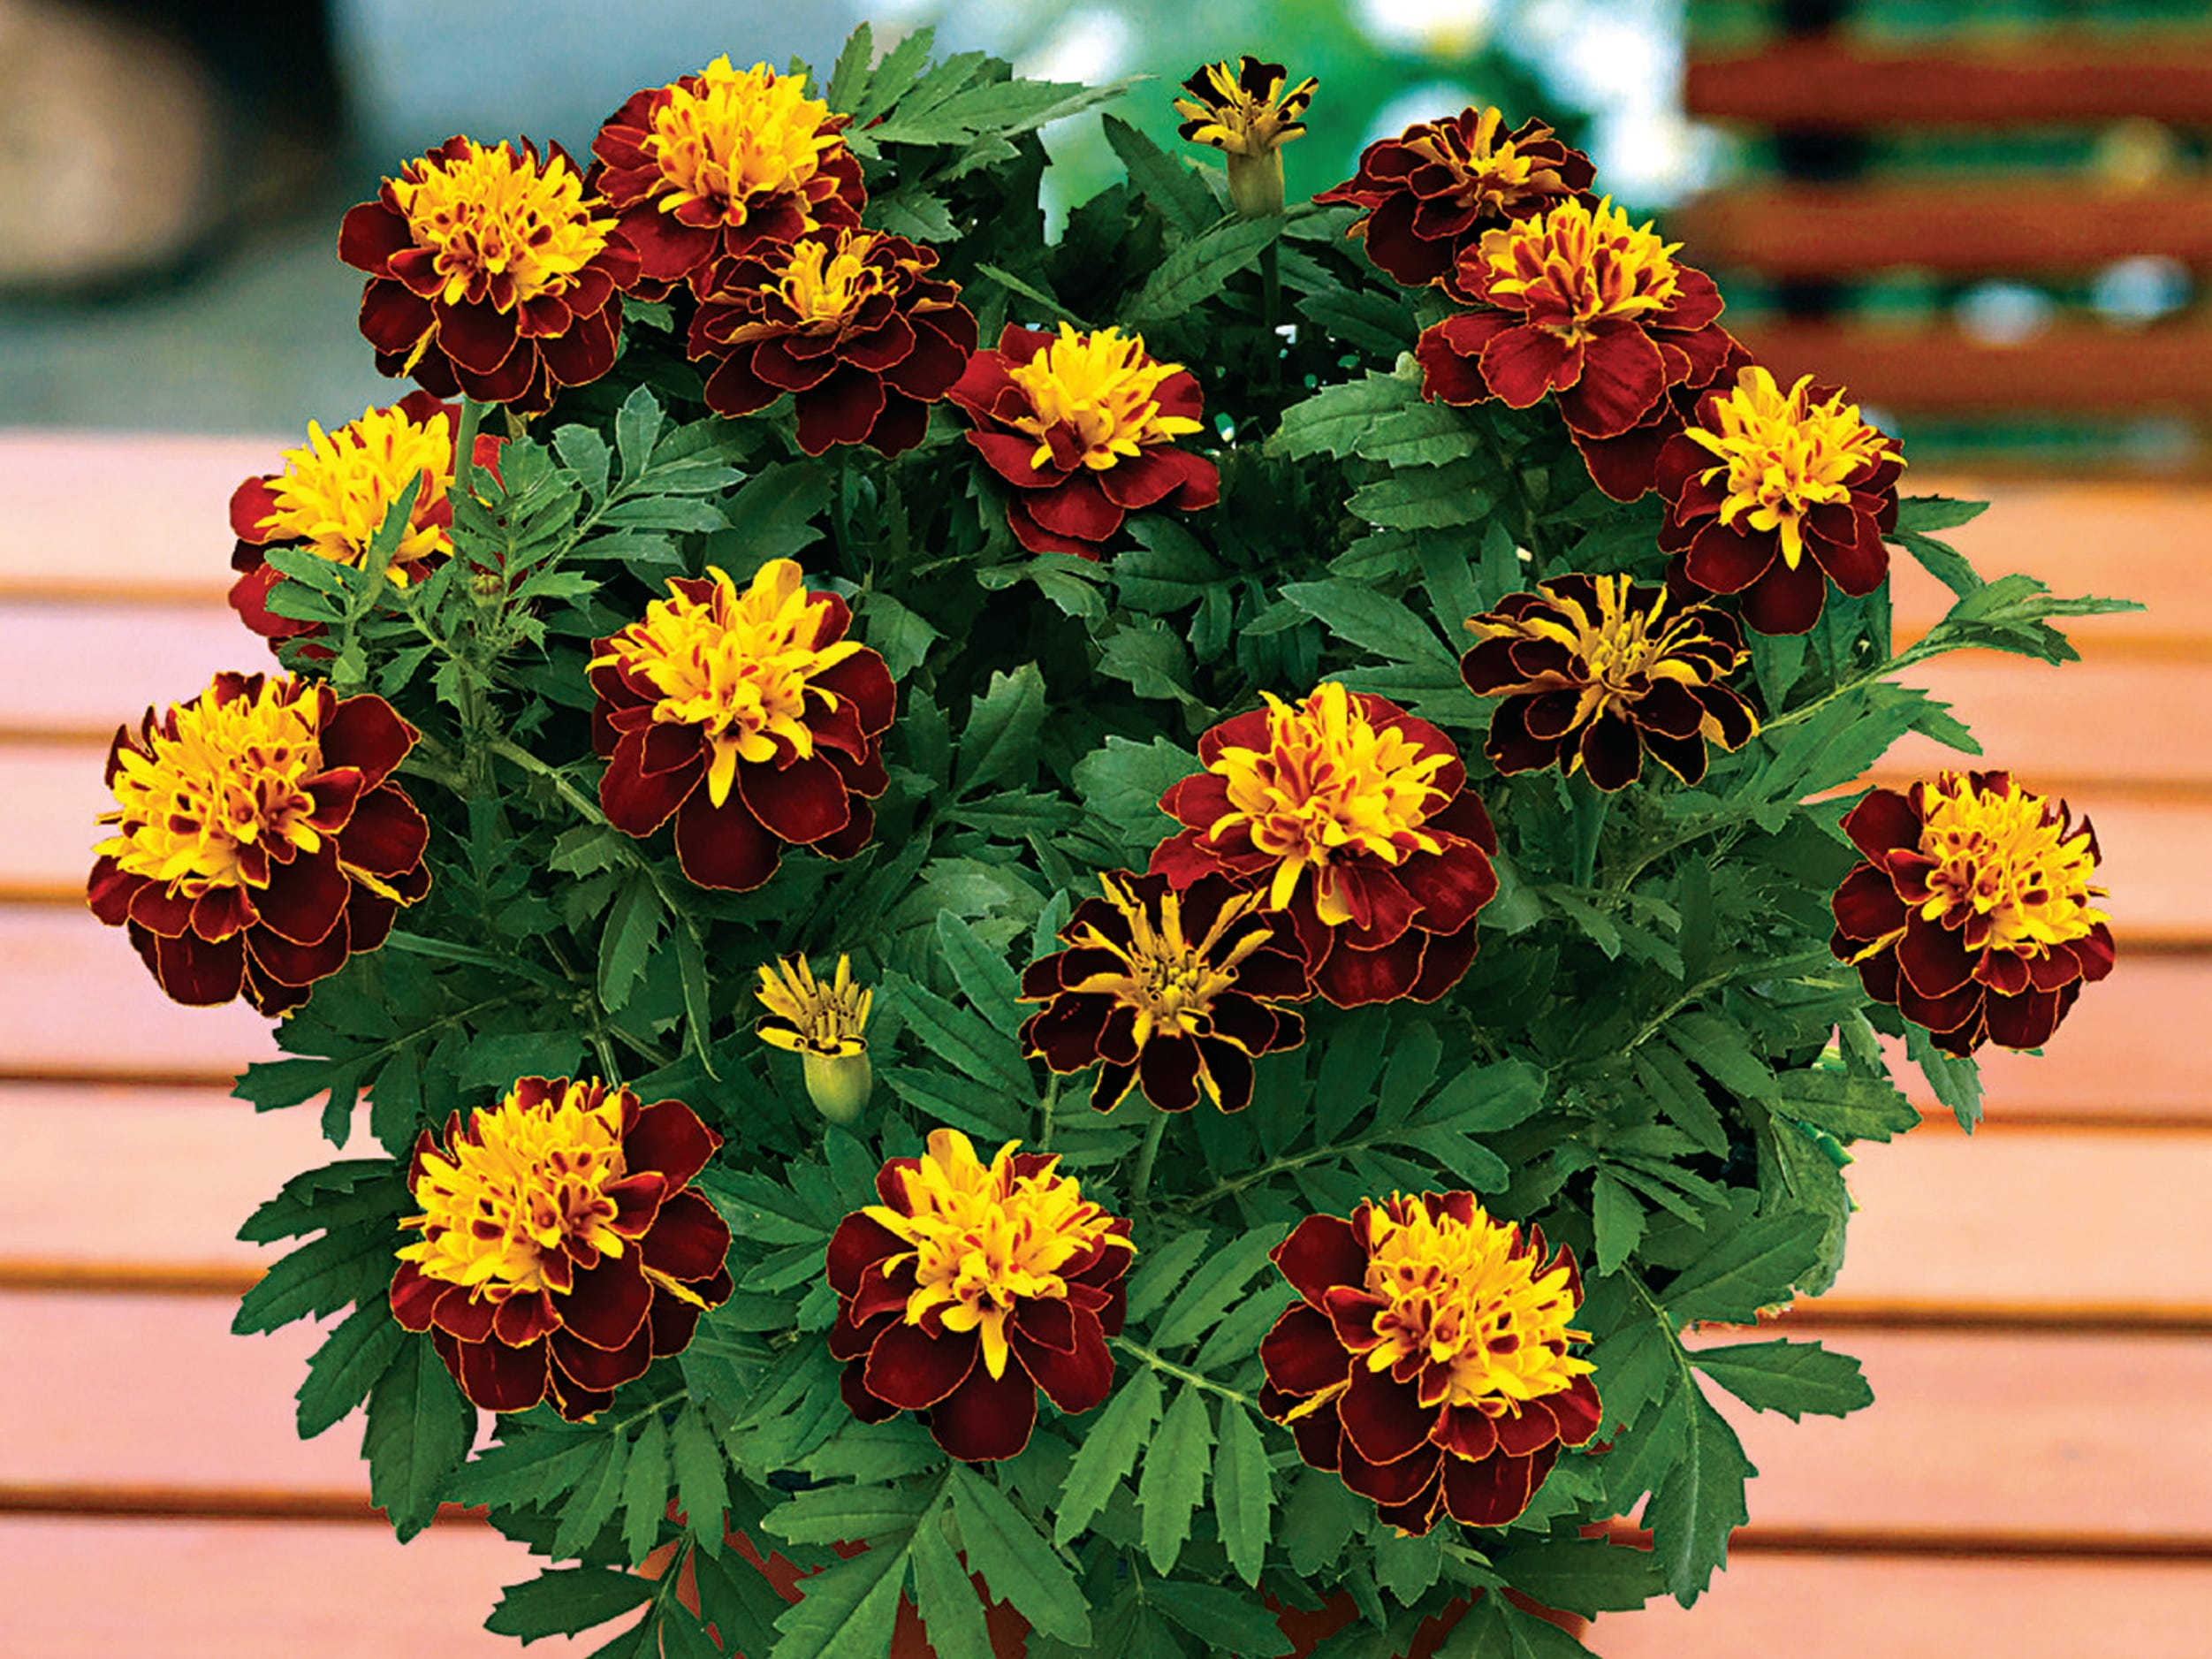 Super Hero Spry Marigoldblooms through summer and into fall and is also good for hummingbirds.